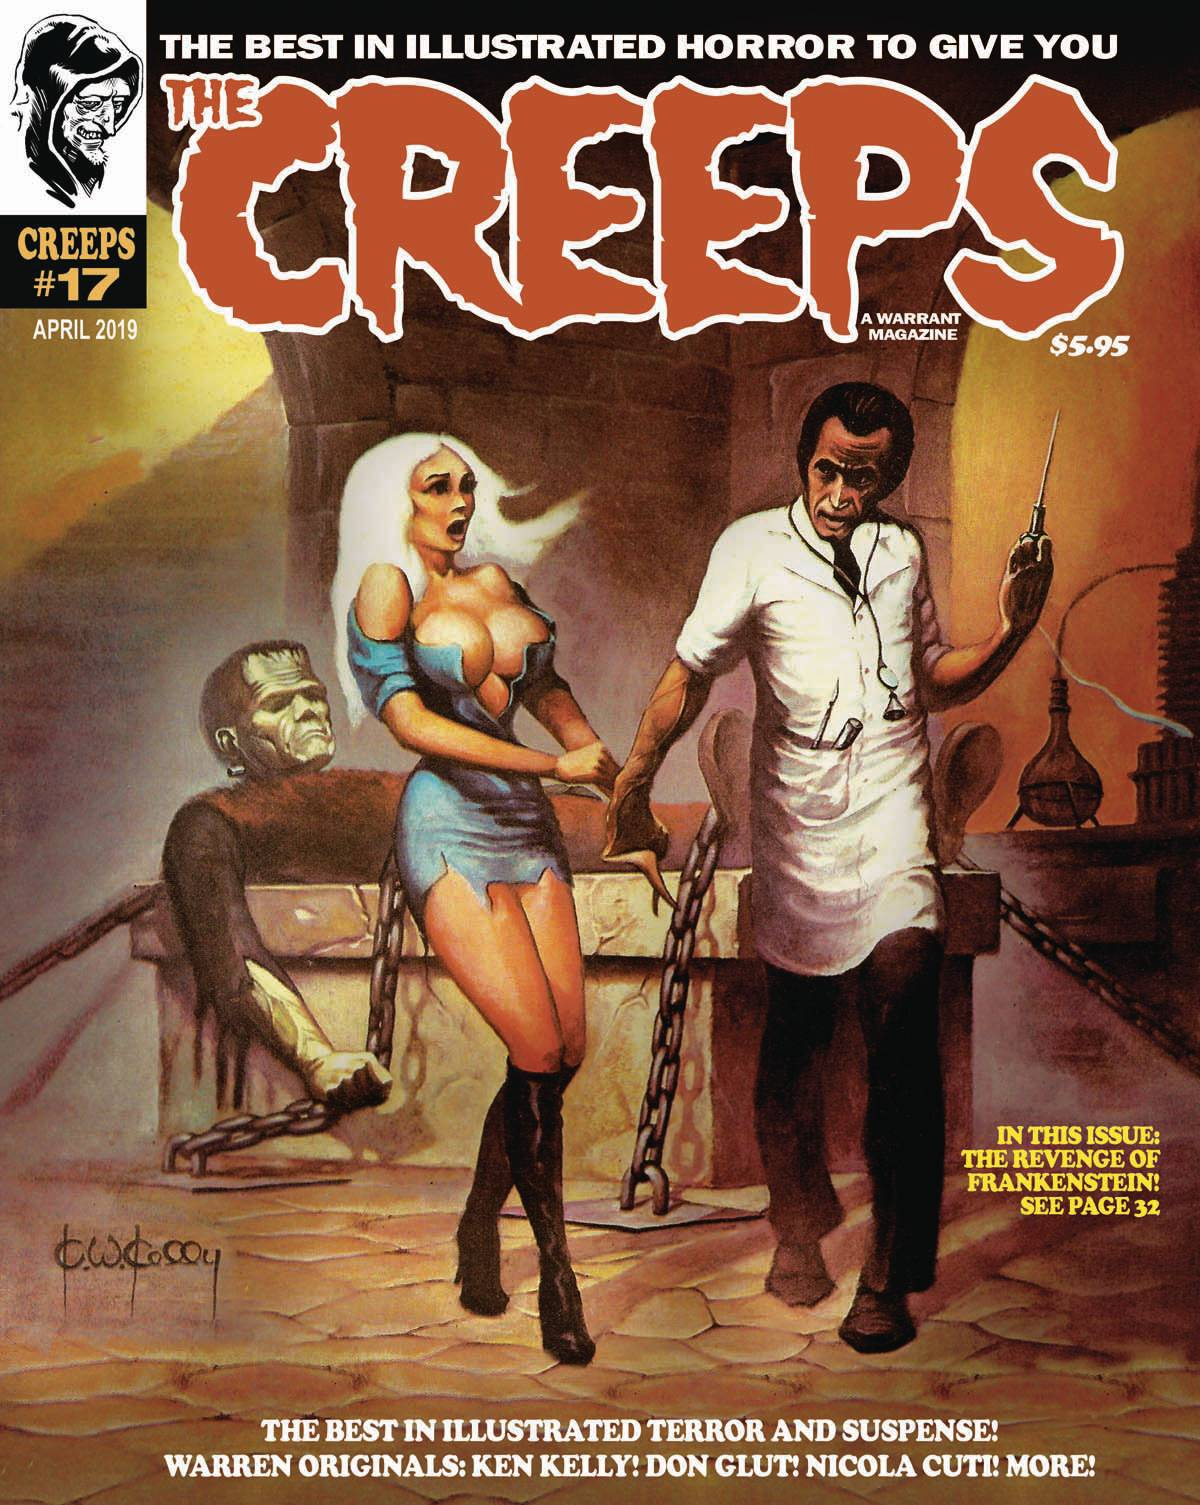 GET The CREEPS!